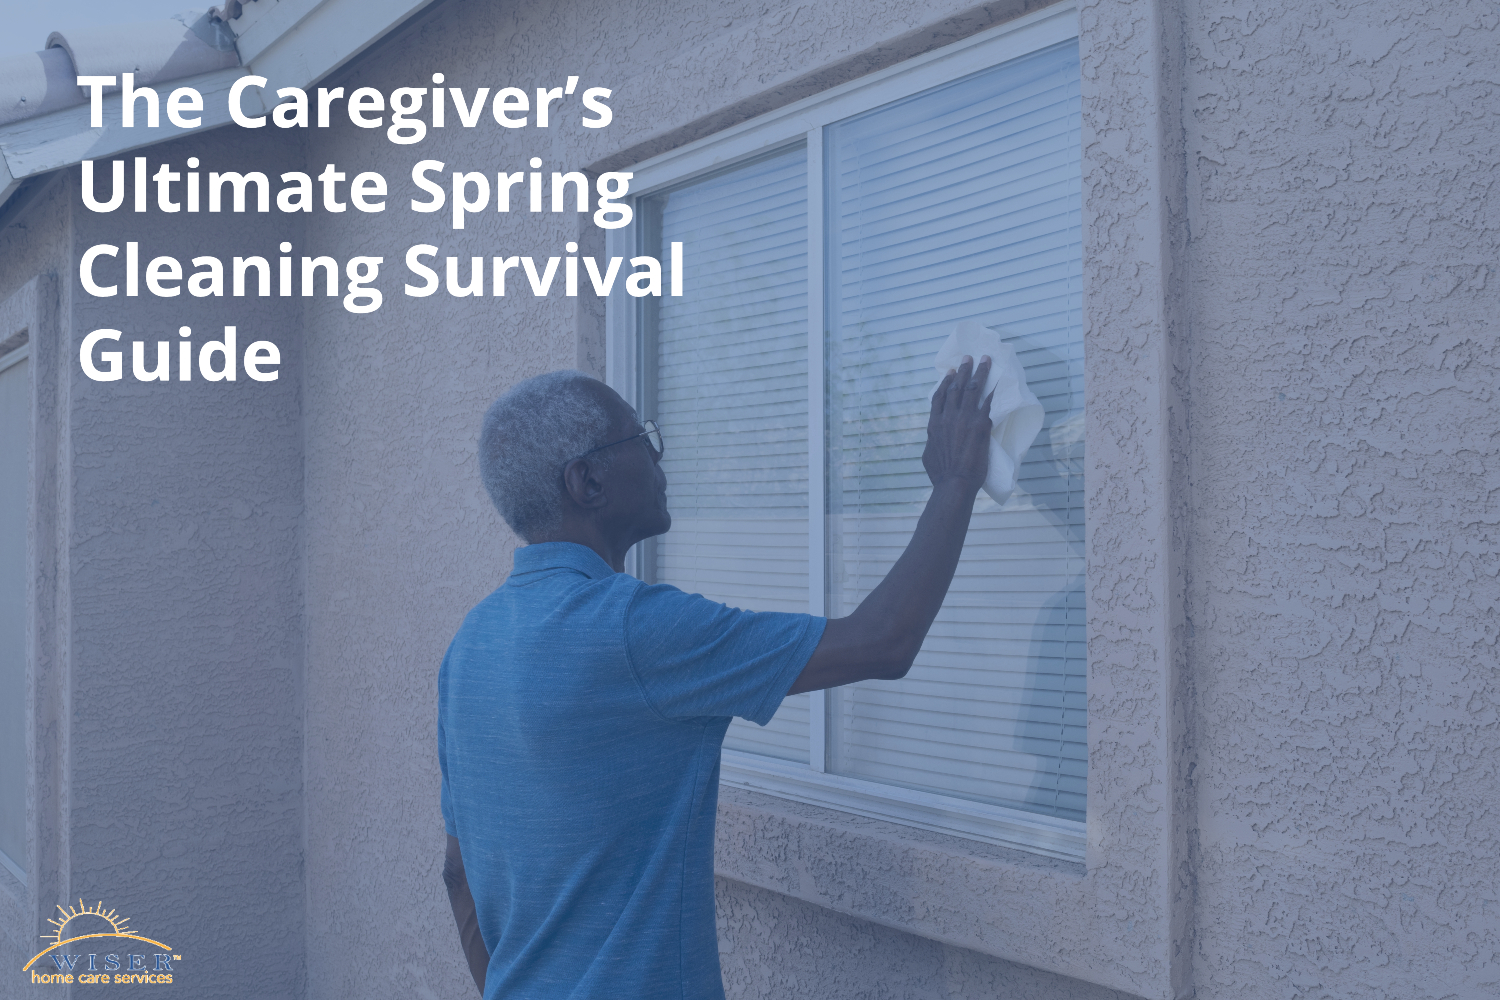 The Caregiver's Ultimate Spring Cleaning Survival Guide